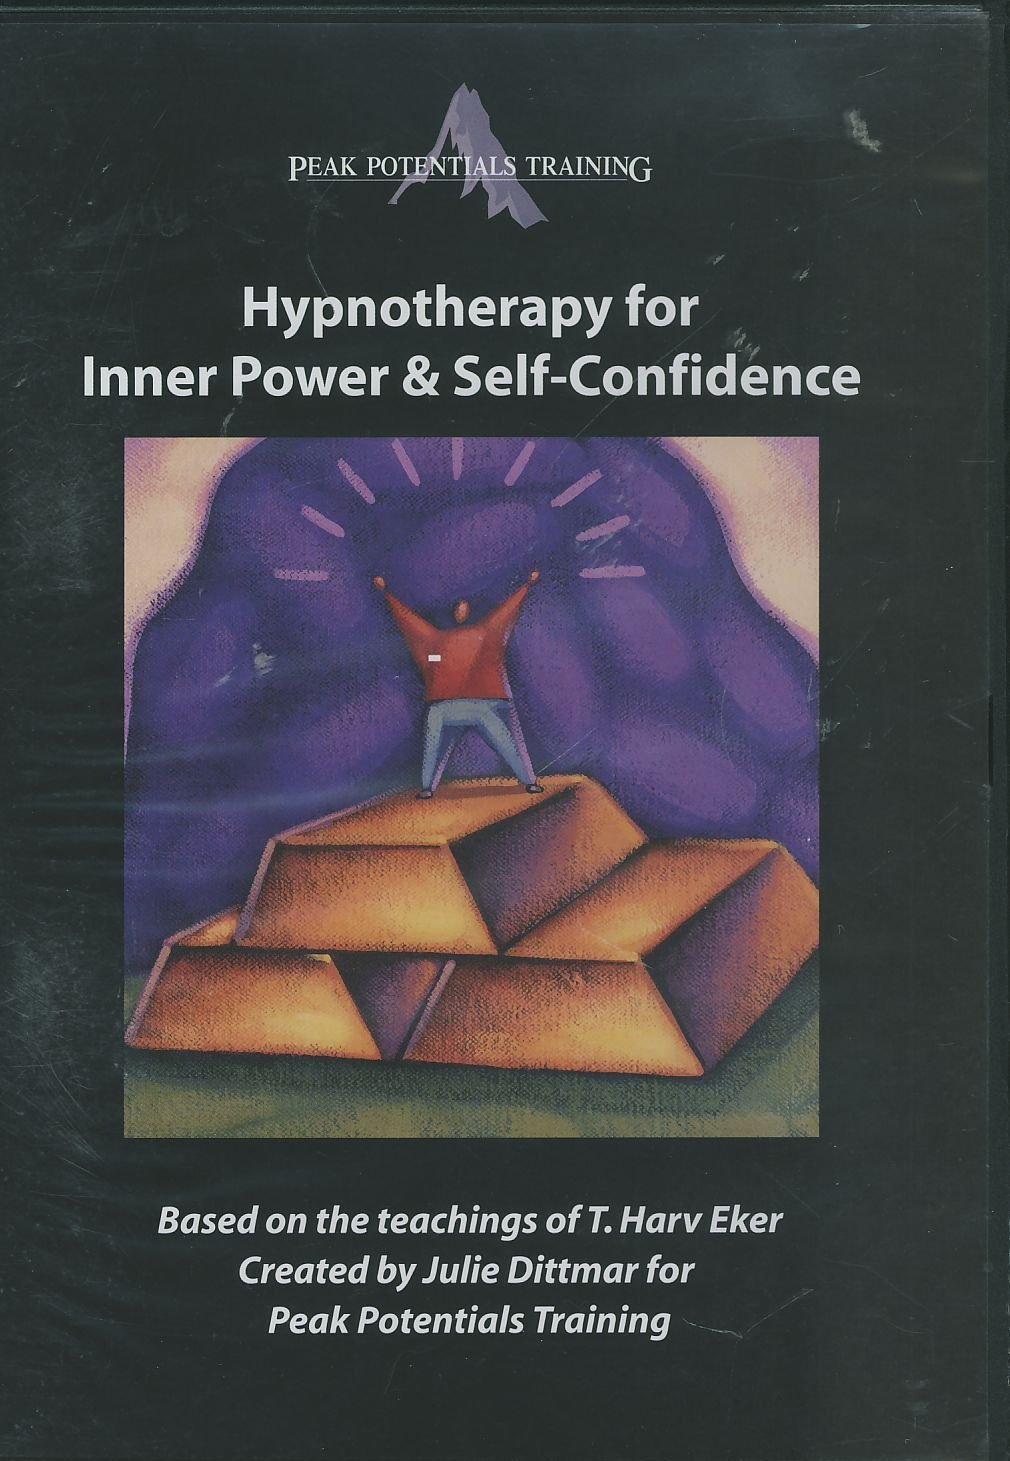 Hypnotherapy for Inner Power & Self-Confidence PDF